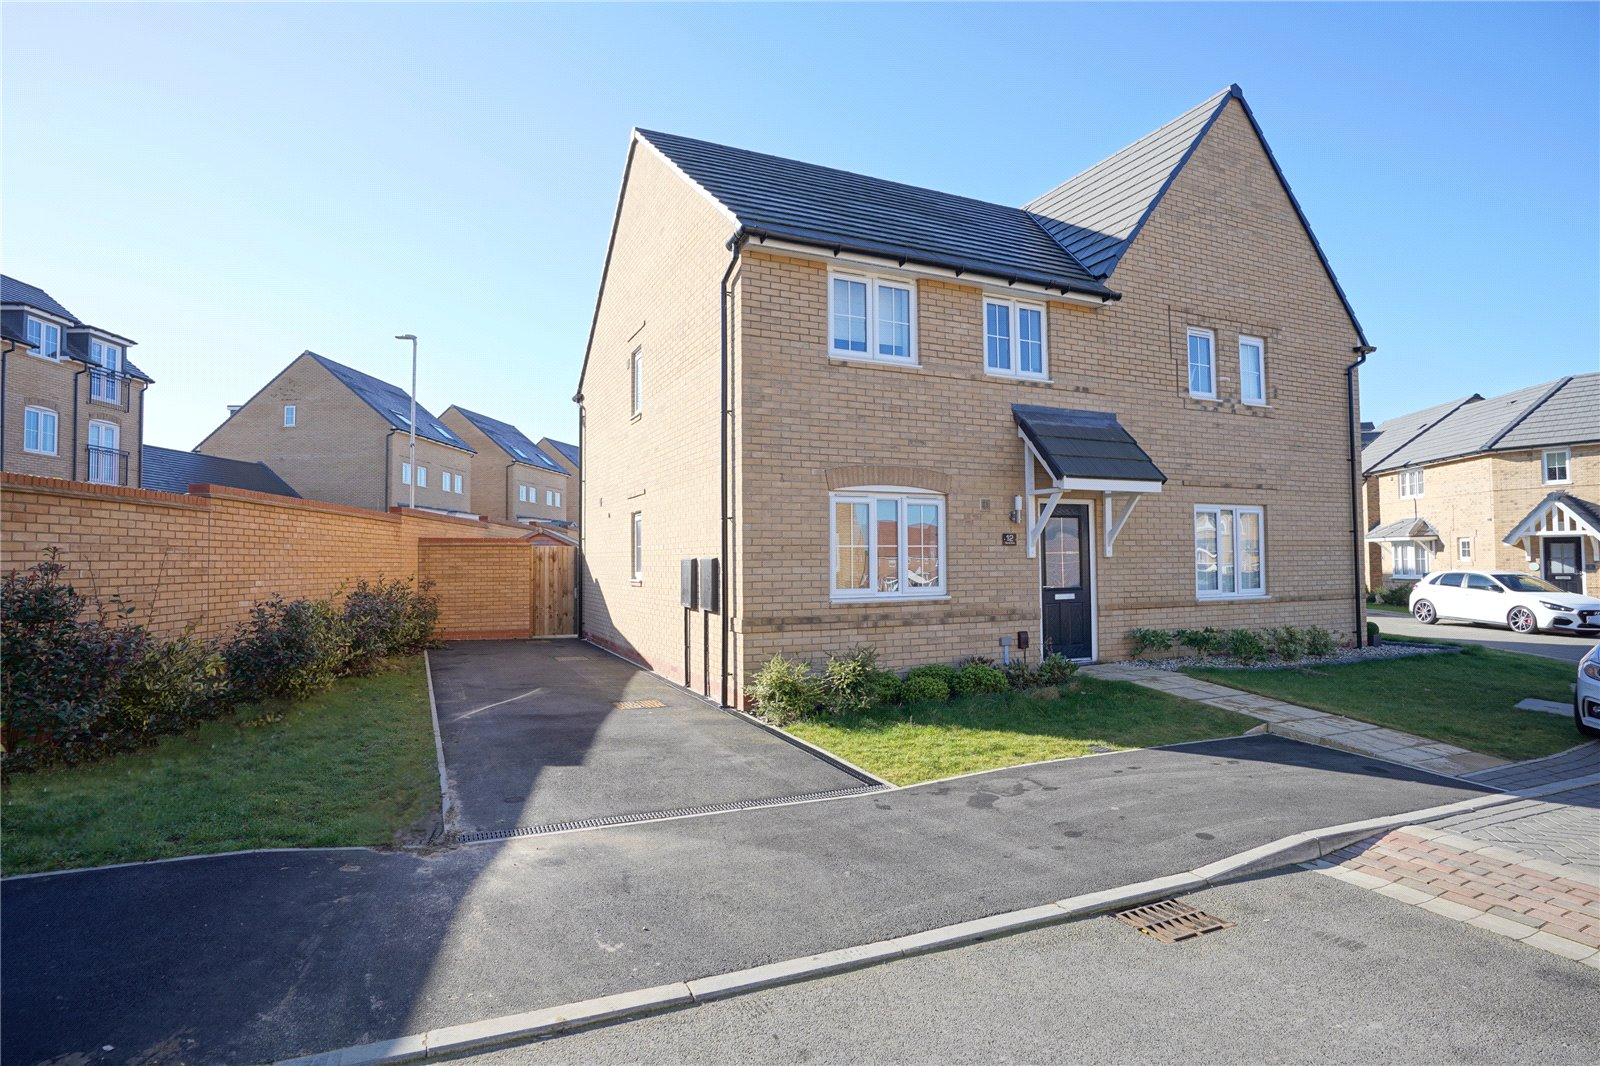 3 bed house for sale in Godmanchester, PE29 2NW - Property Image 1